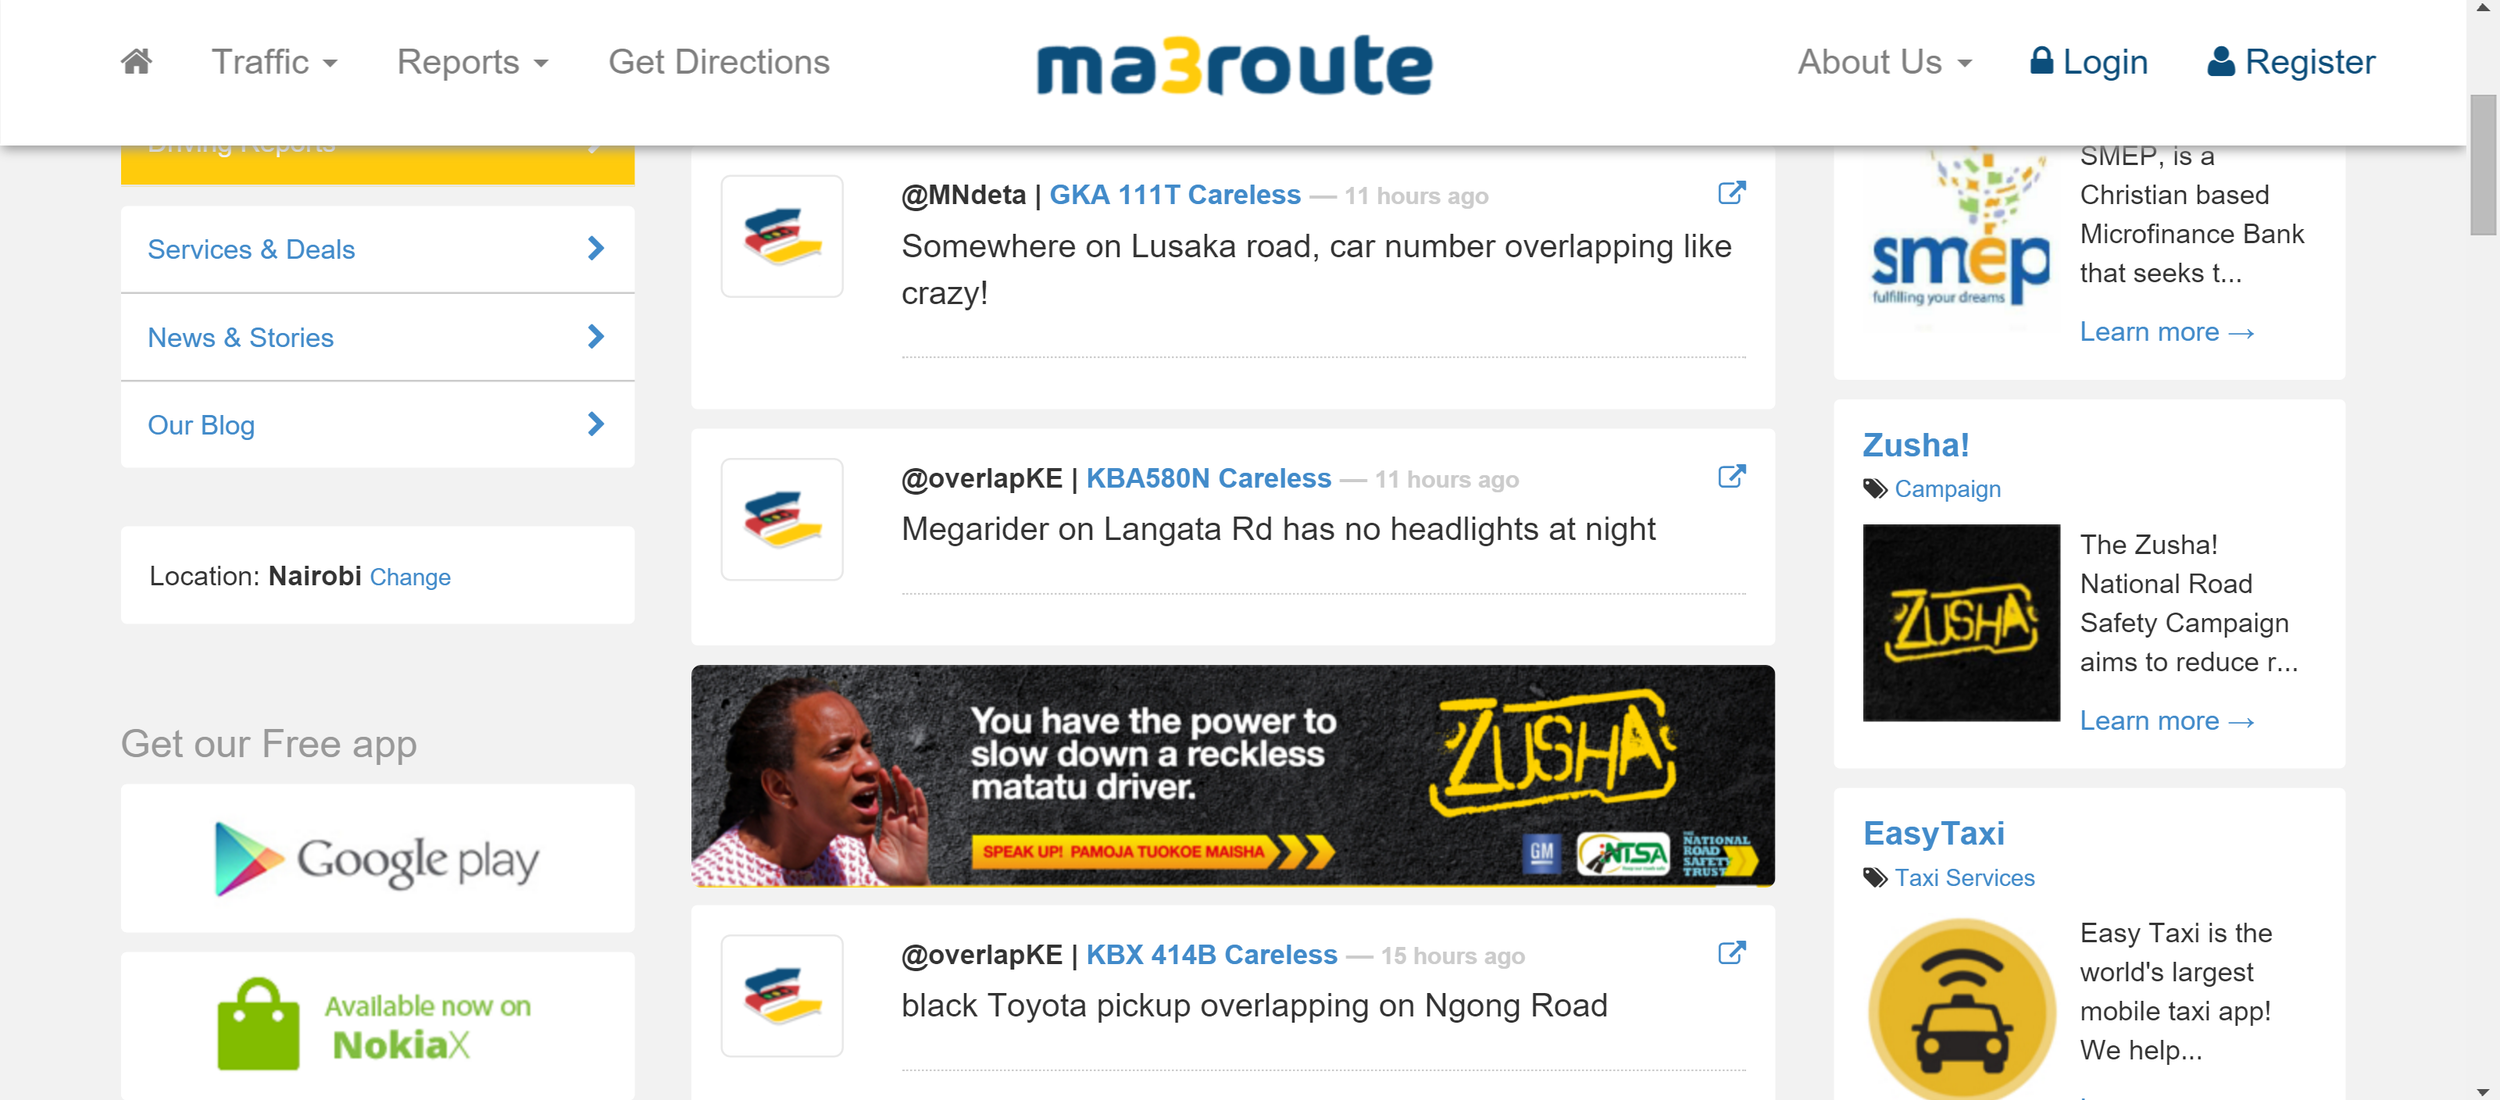 https://www.ma3route.com/ screenshot from Oct. 19, 2015